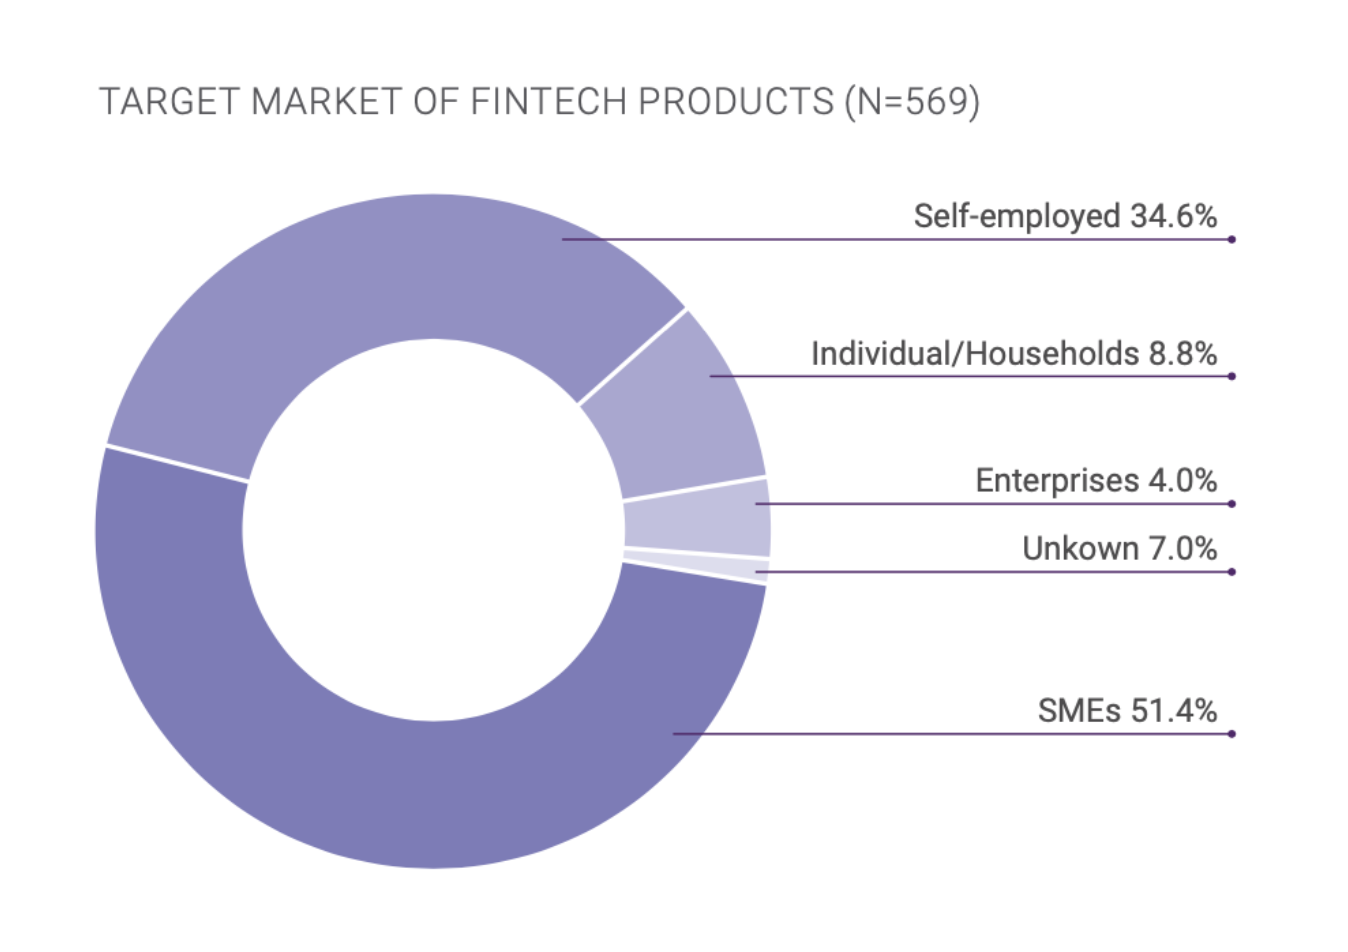 Target market of Fintech products